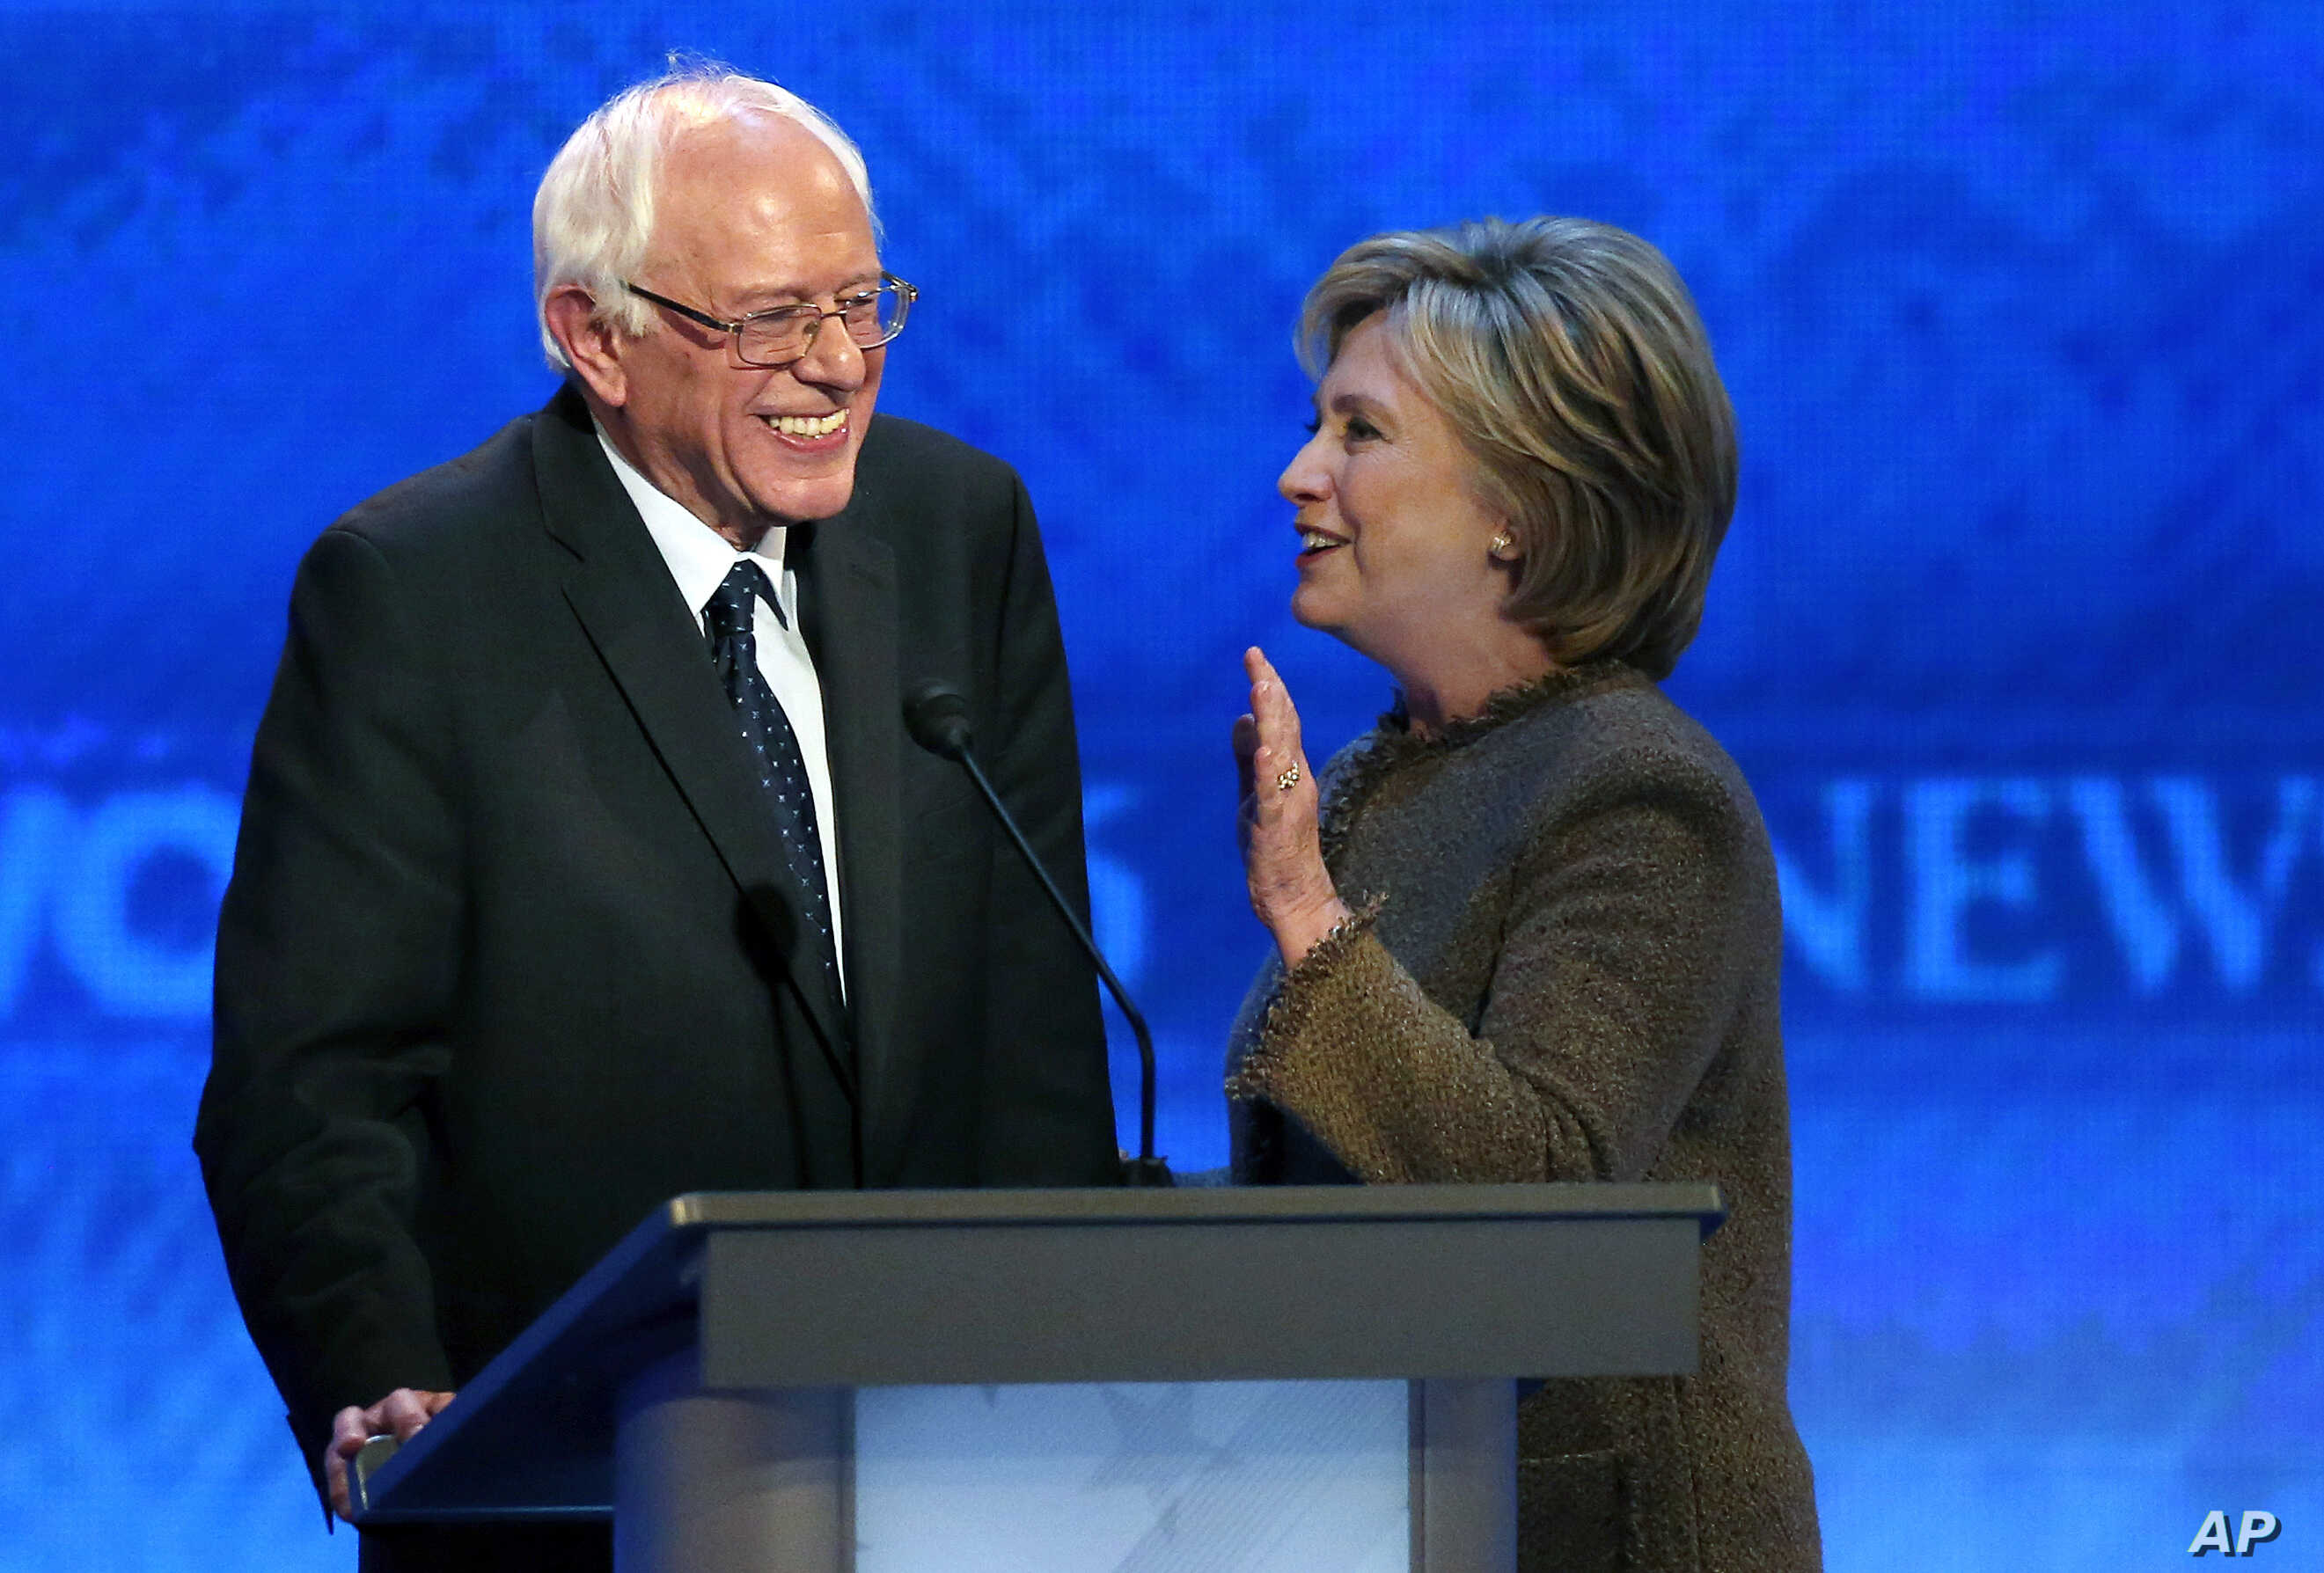 Hillary Clinton, right, speaks to Bernie Sanders during a break at the Democratic presidential primary debate, at Saint Anselm College in Manchester, N.H., Dec. 19, 2015.